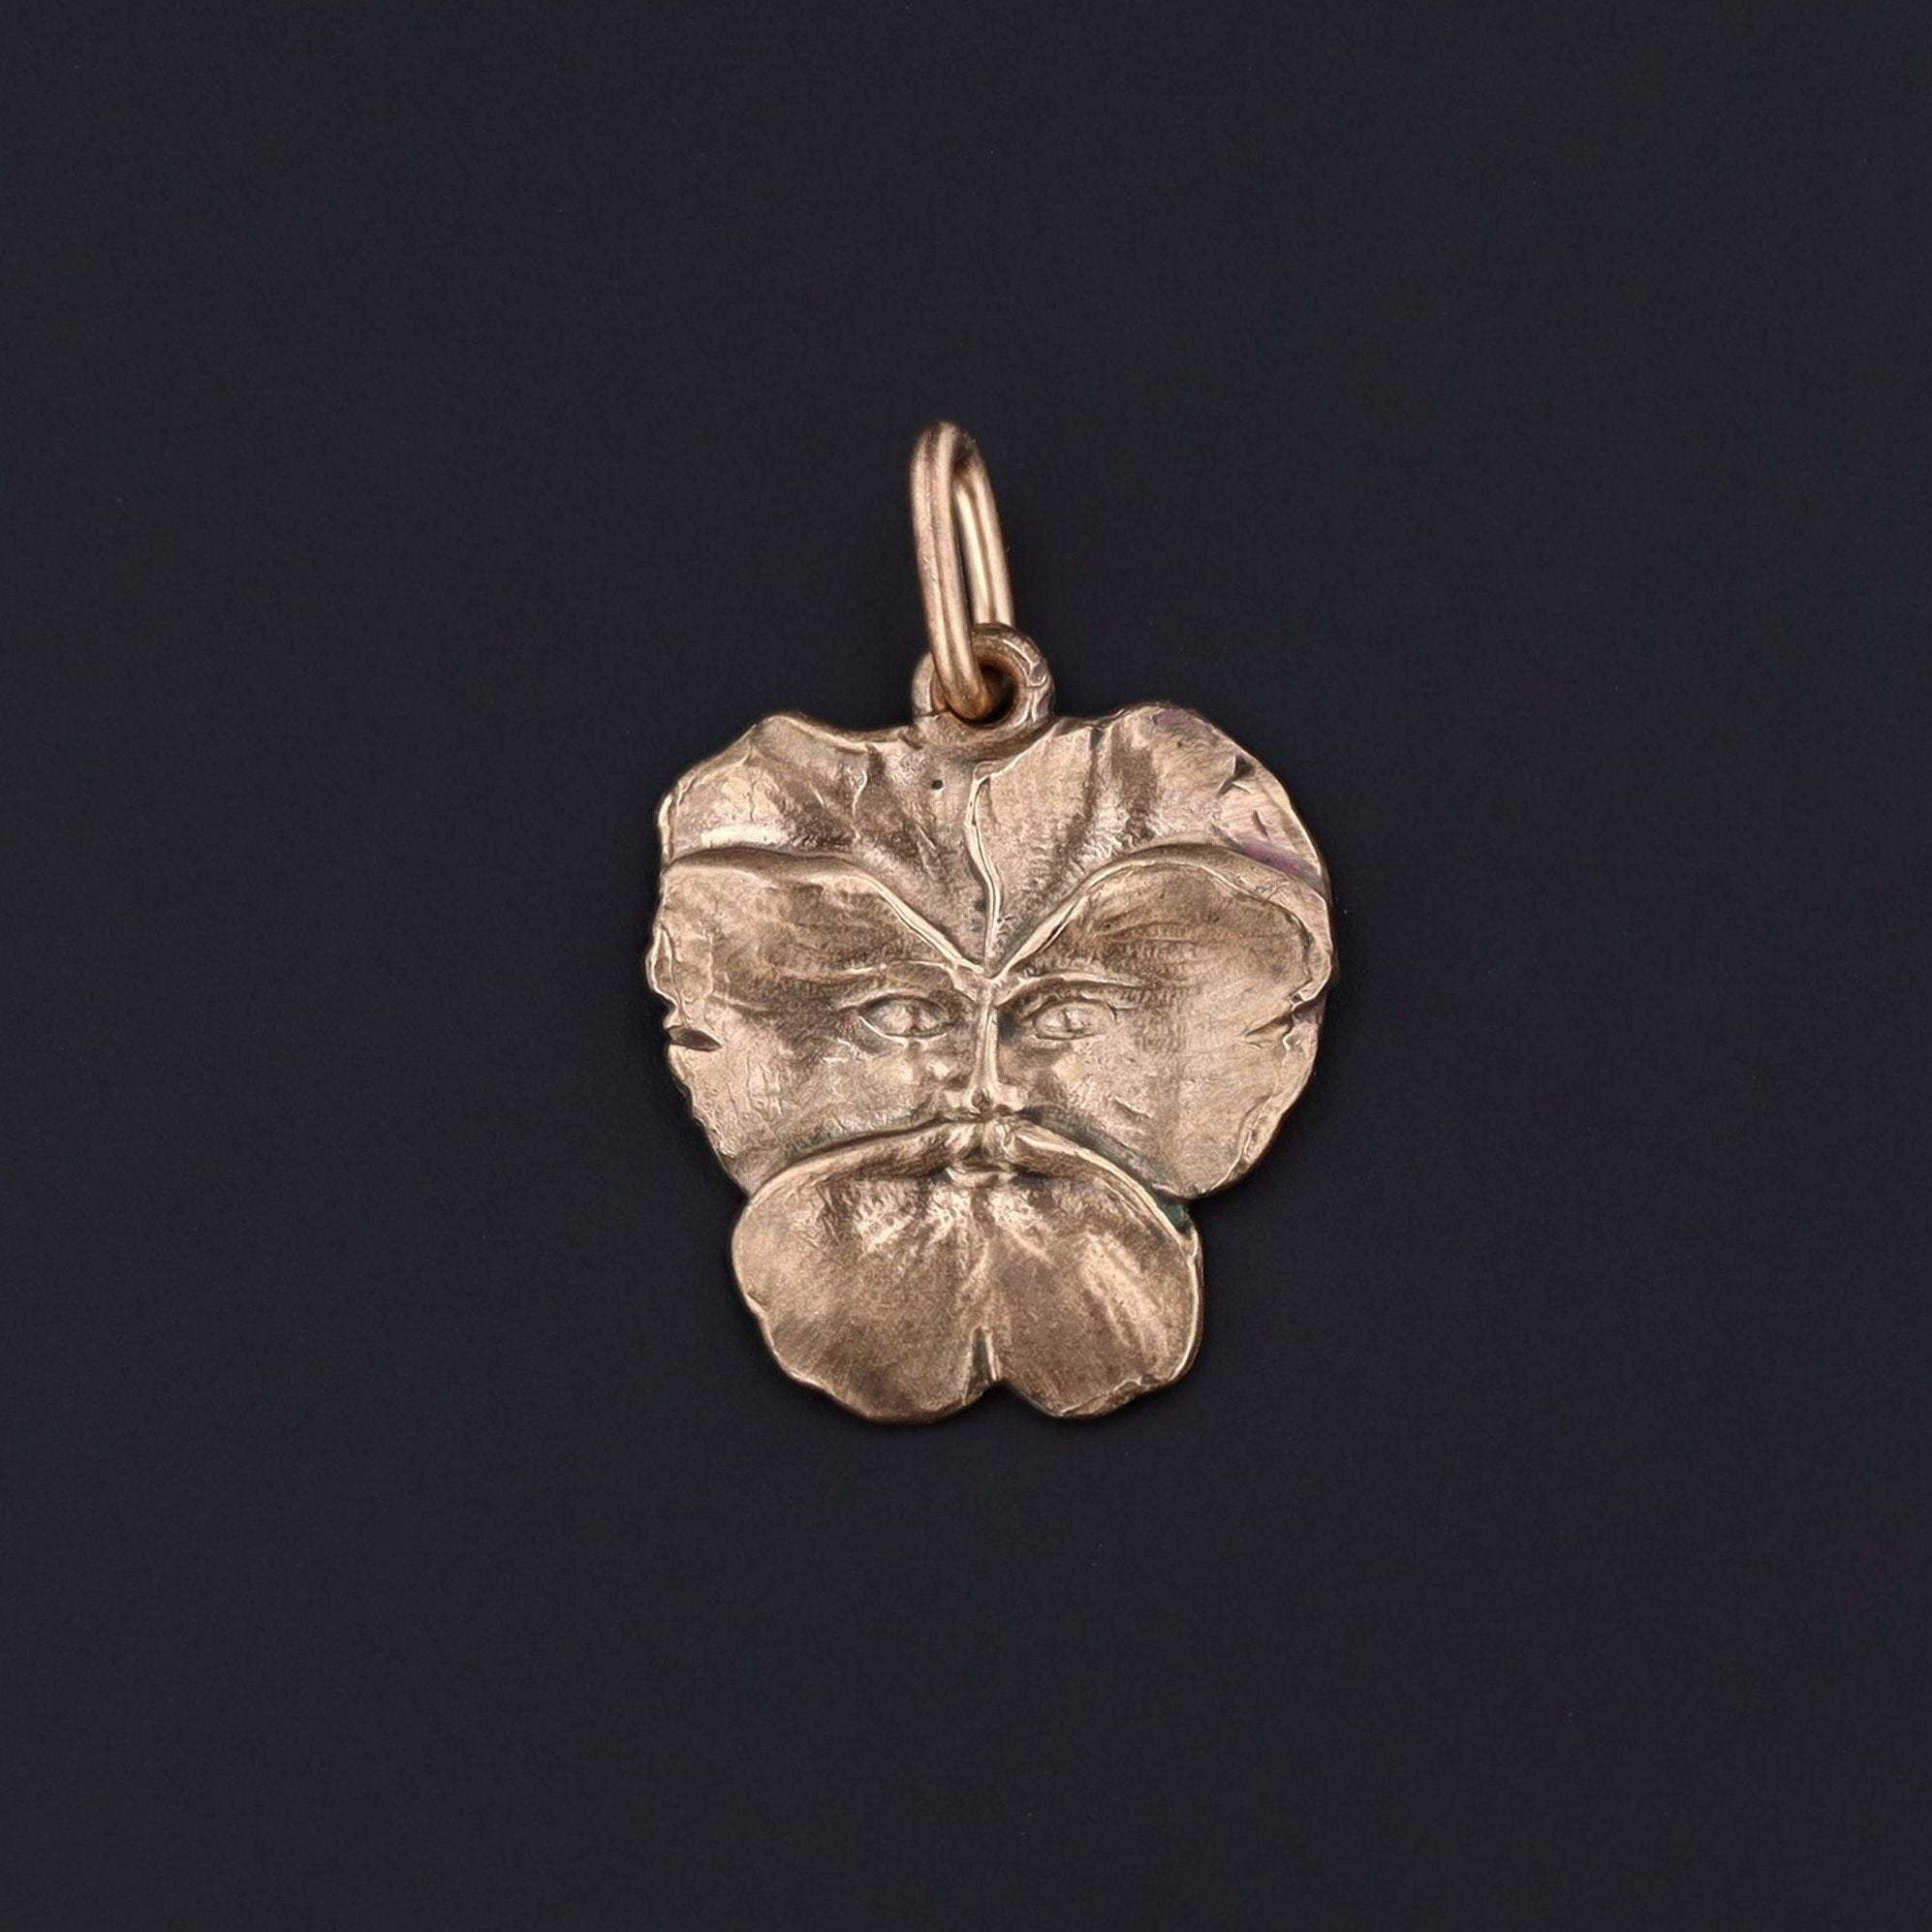 Pansy Man Charm | Green Man Charm | 14k Gold Charm | Art Nouveau Style Charm | Antique Reproduction